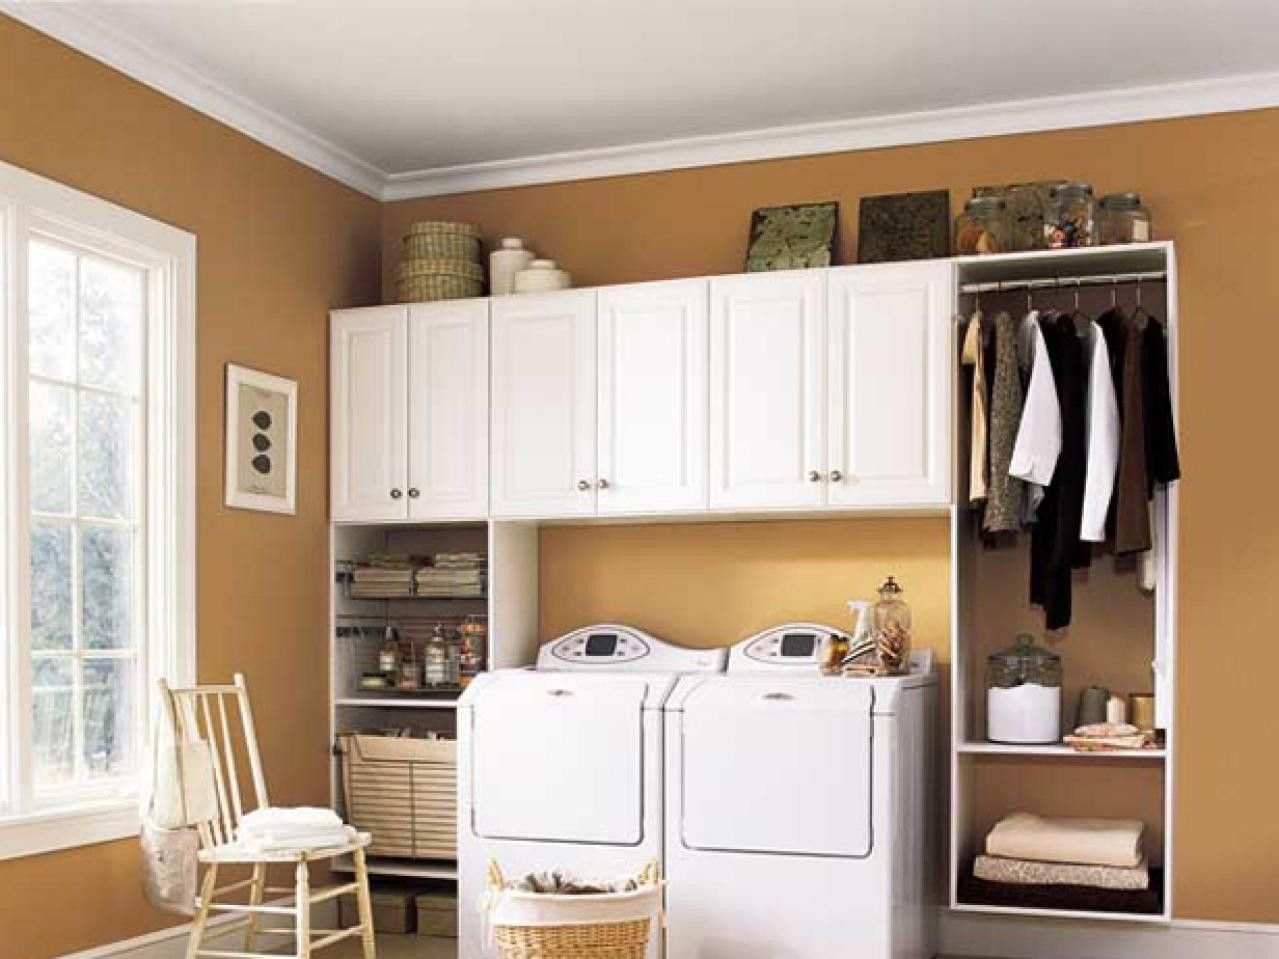 2019 Laundry Room Storage Cabinets With Doors   Apartment Kitchen Cabinet  Ideas Check More At Http